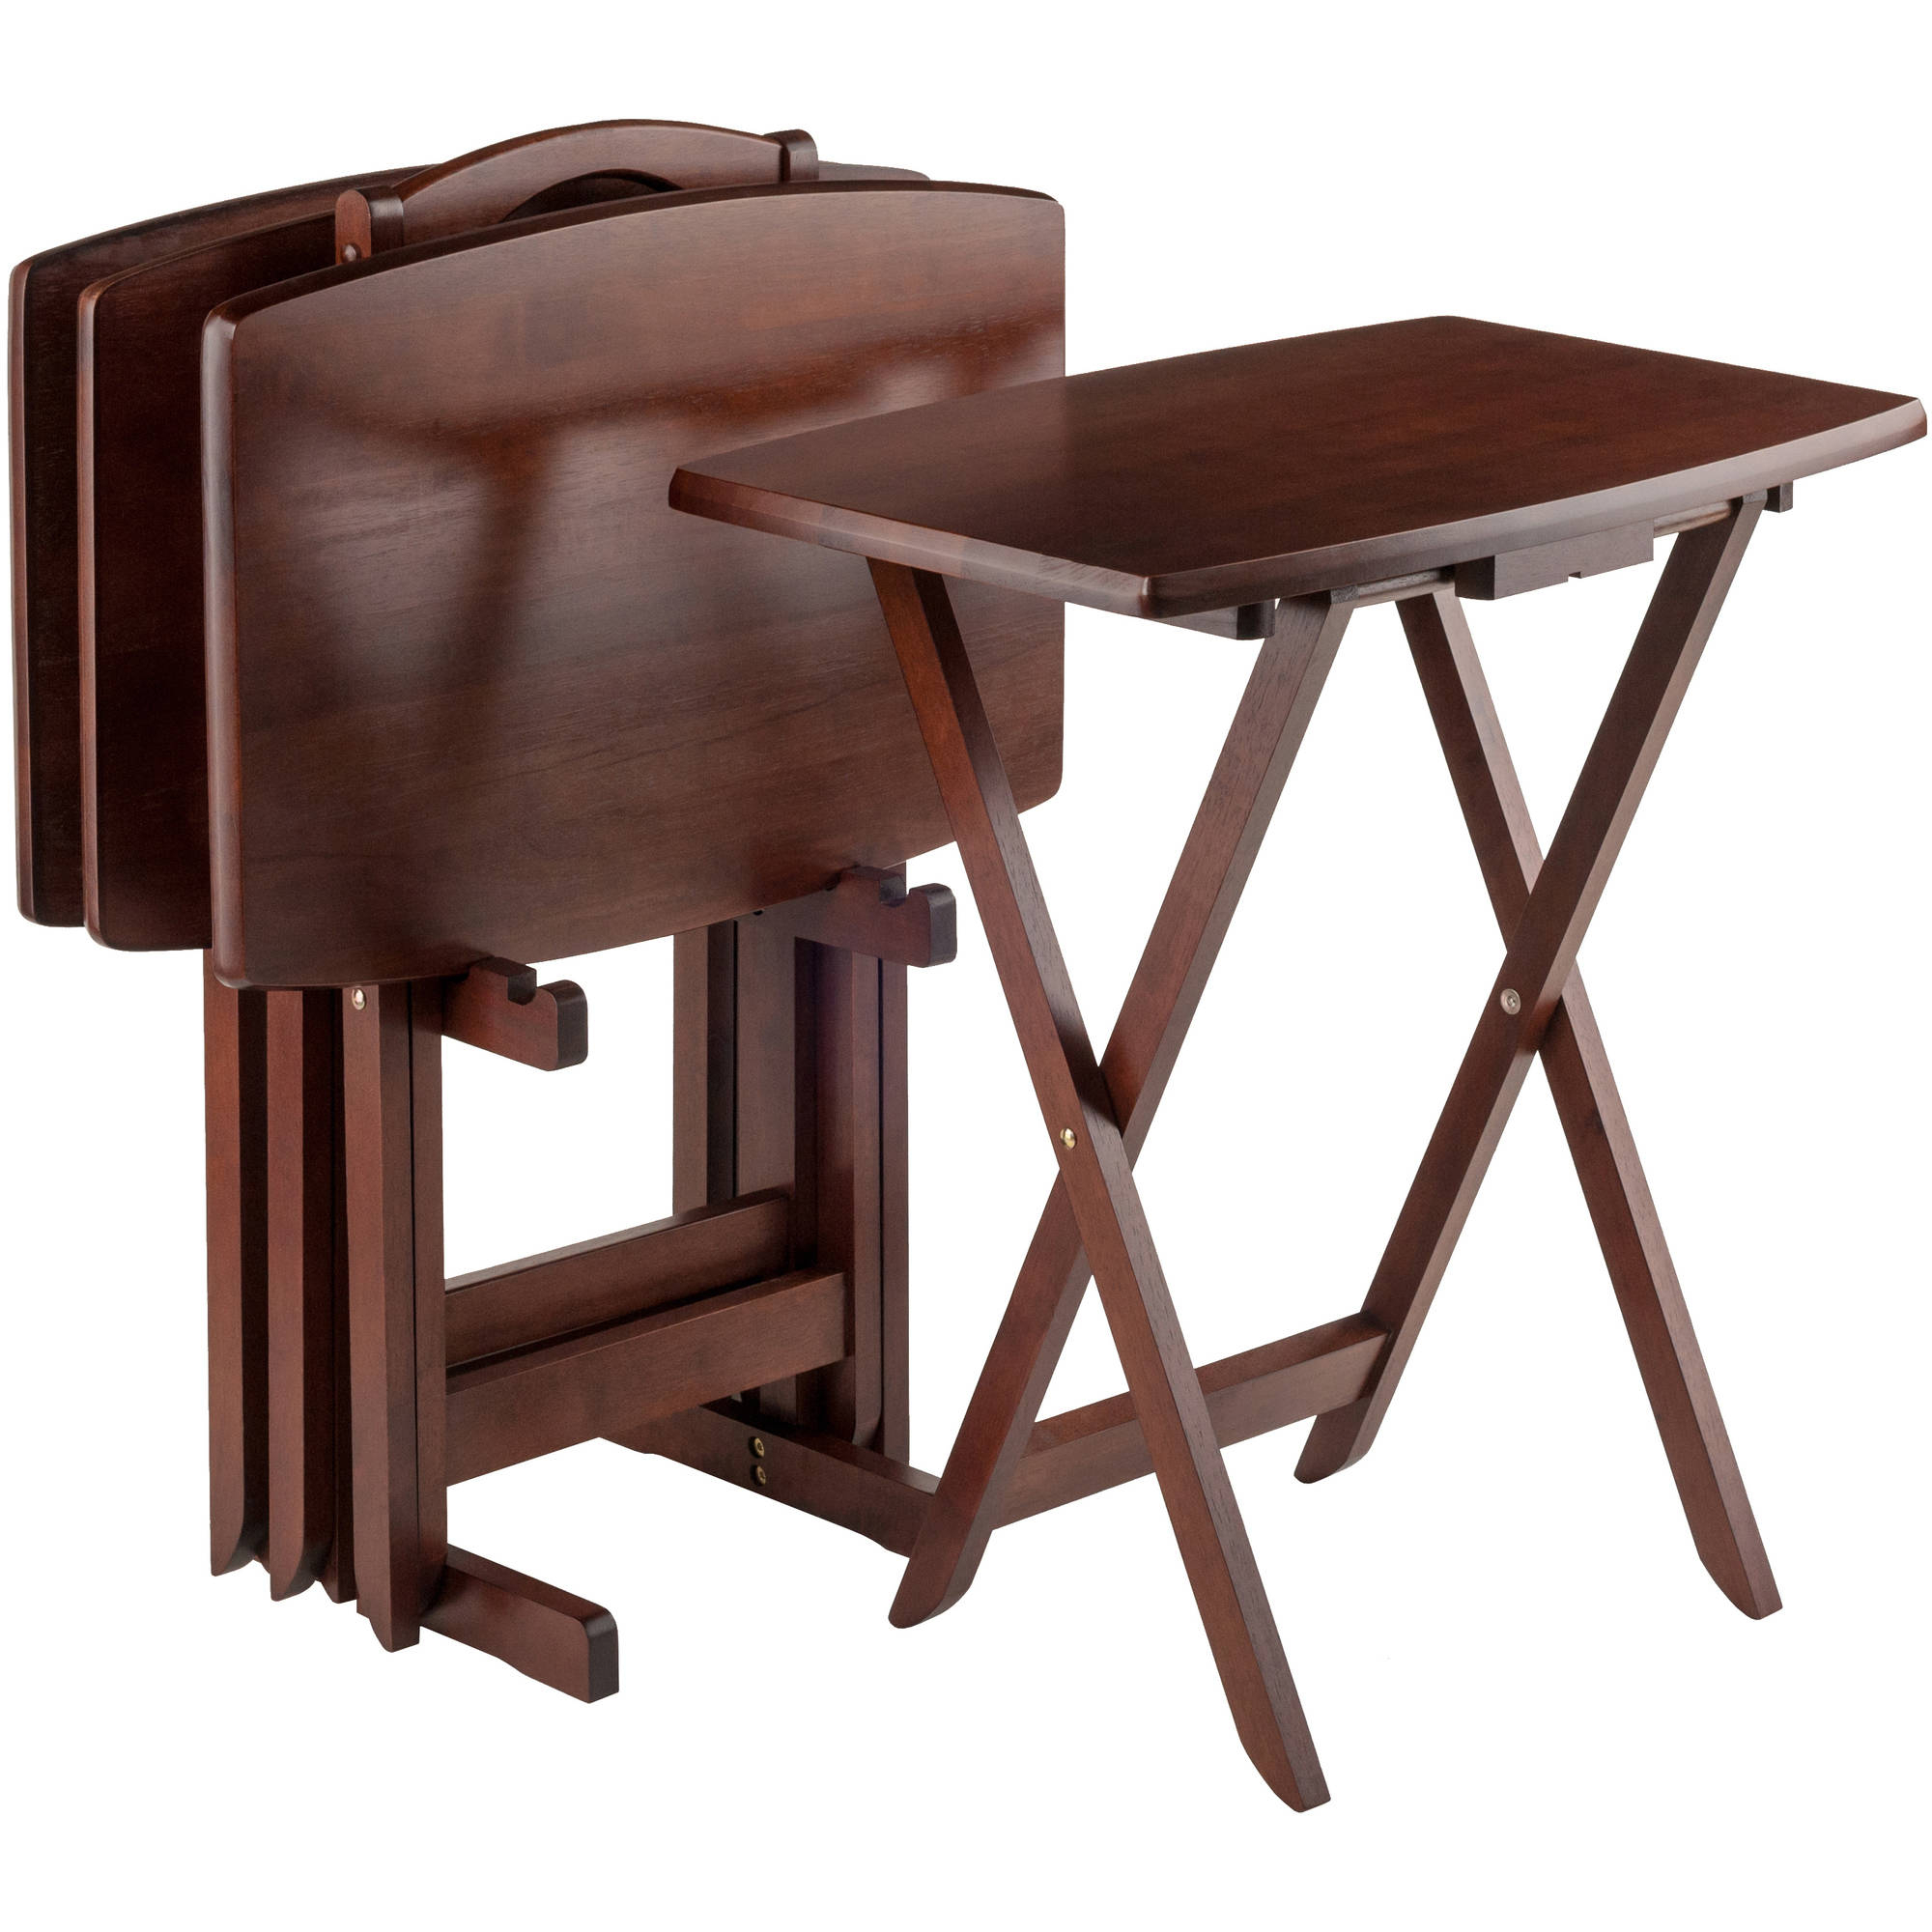 Widely Used Folding Tv Trays With Stand Inside Folding Tv And Snack Tray Table Black Set Of 2 – Walmart (View 20 of 20)